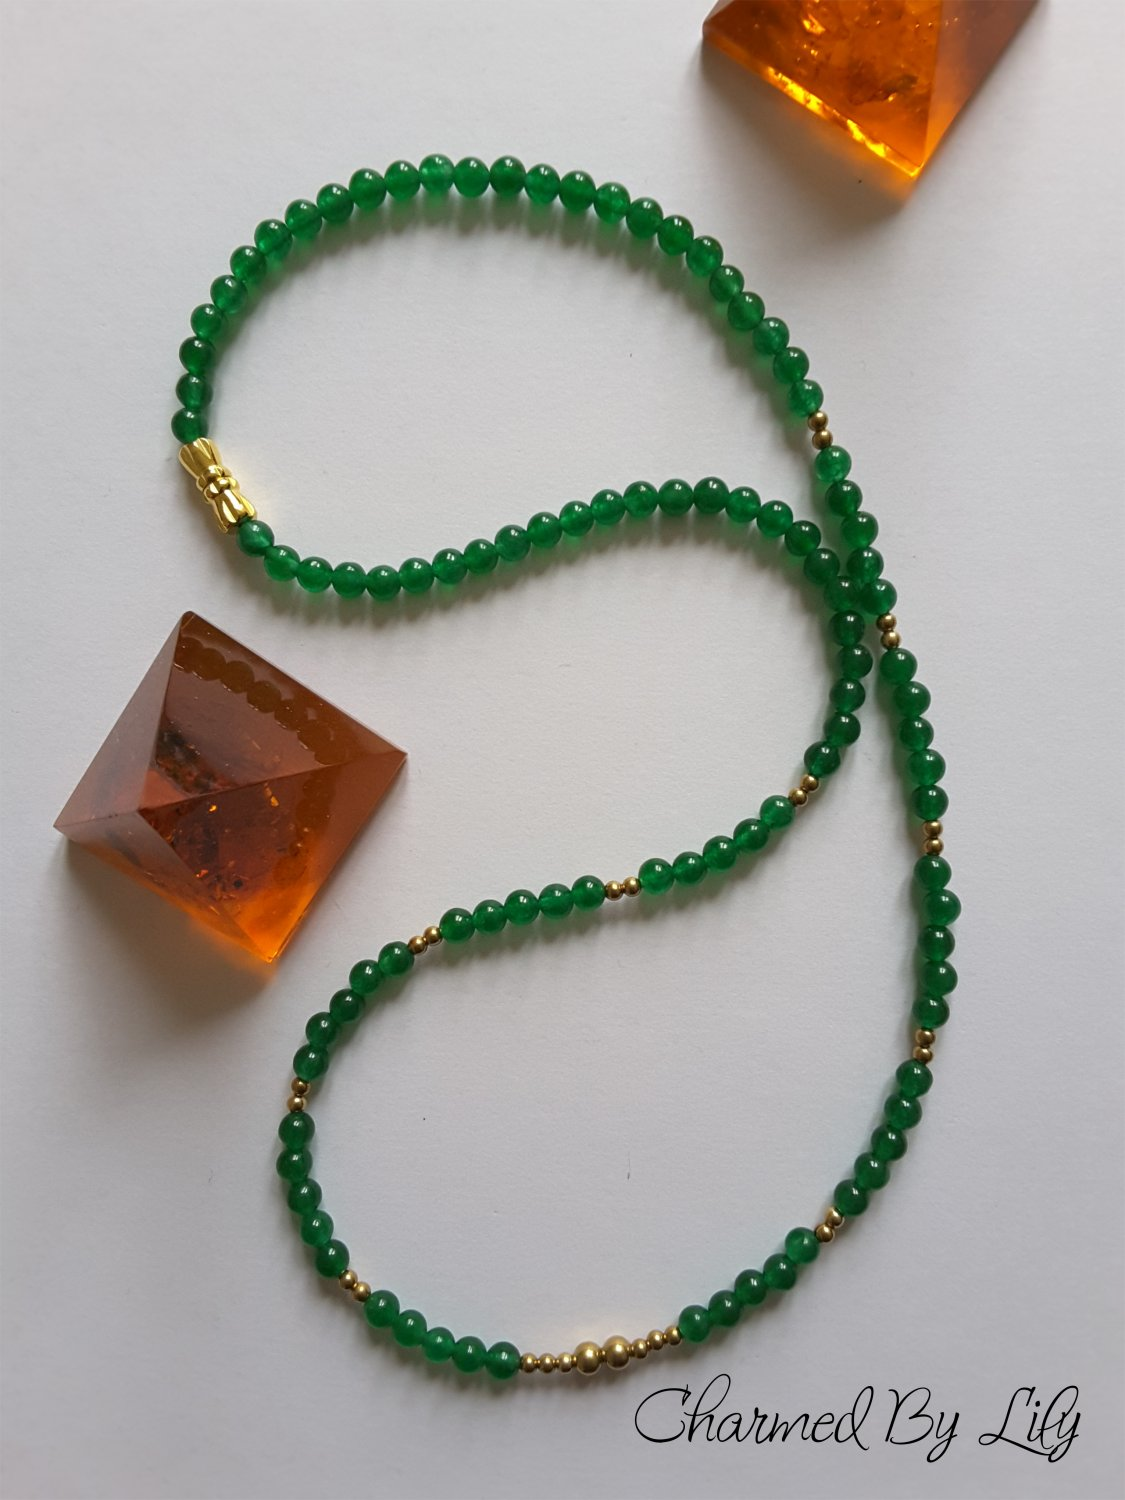 Classic Dark Green Jade and Brass Necklace. Inspired by Ancient Sumeria.